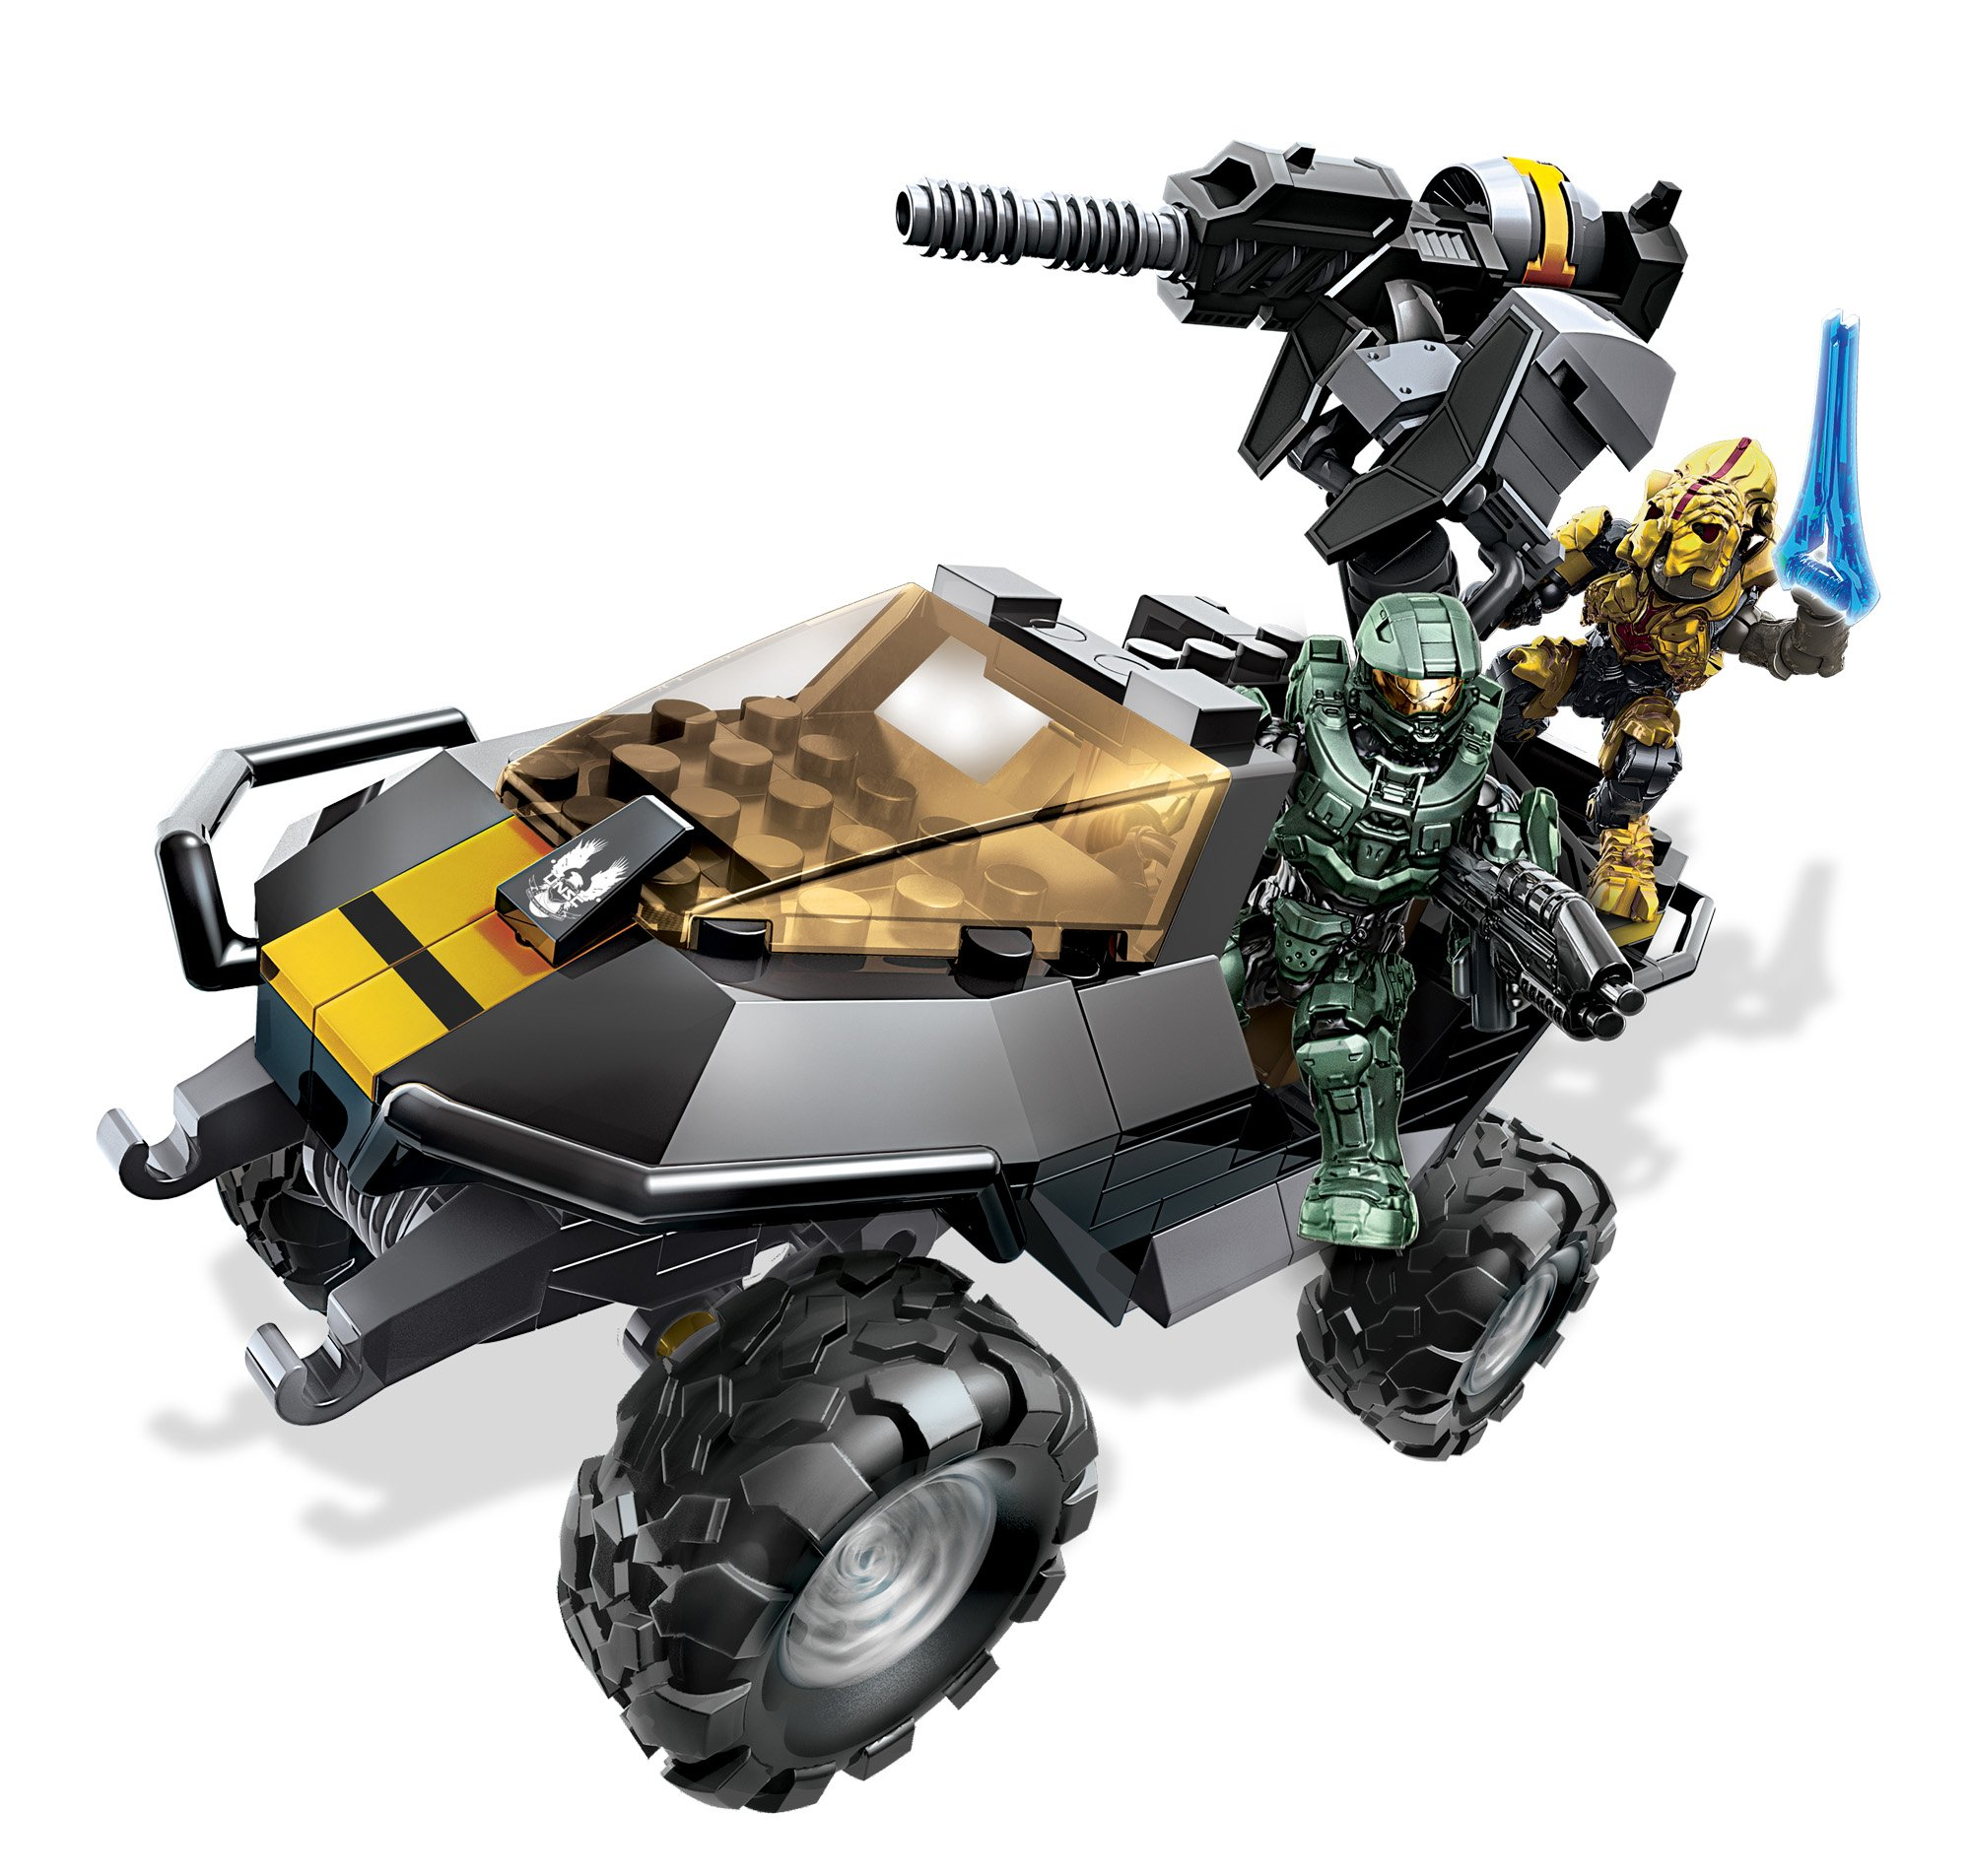 How To Build Lego Halo Vehicles